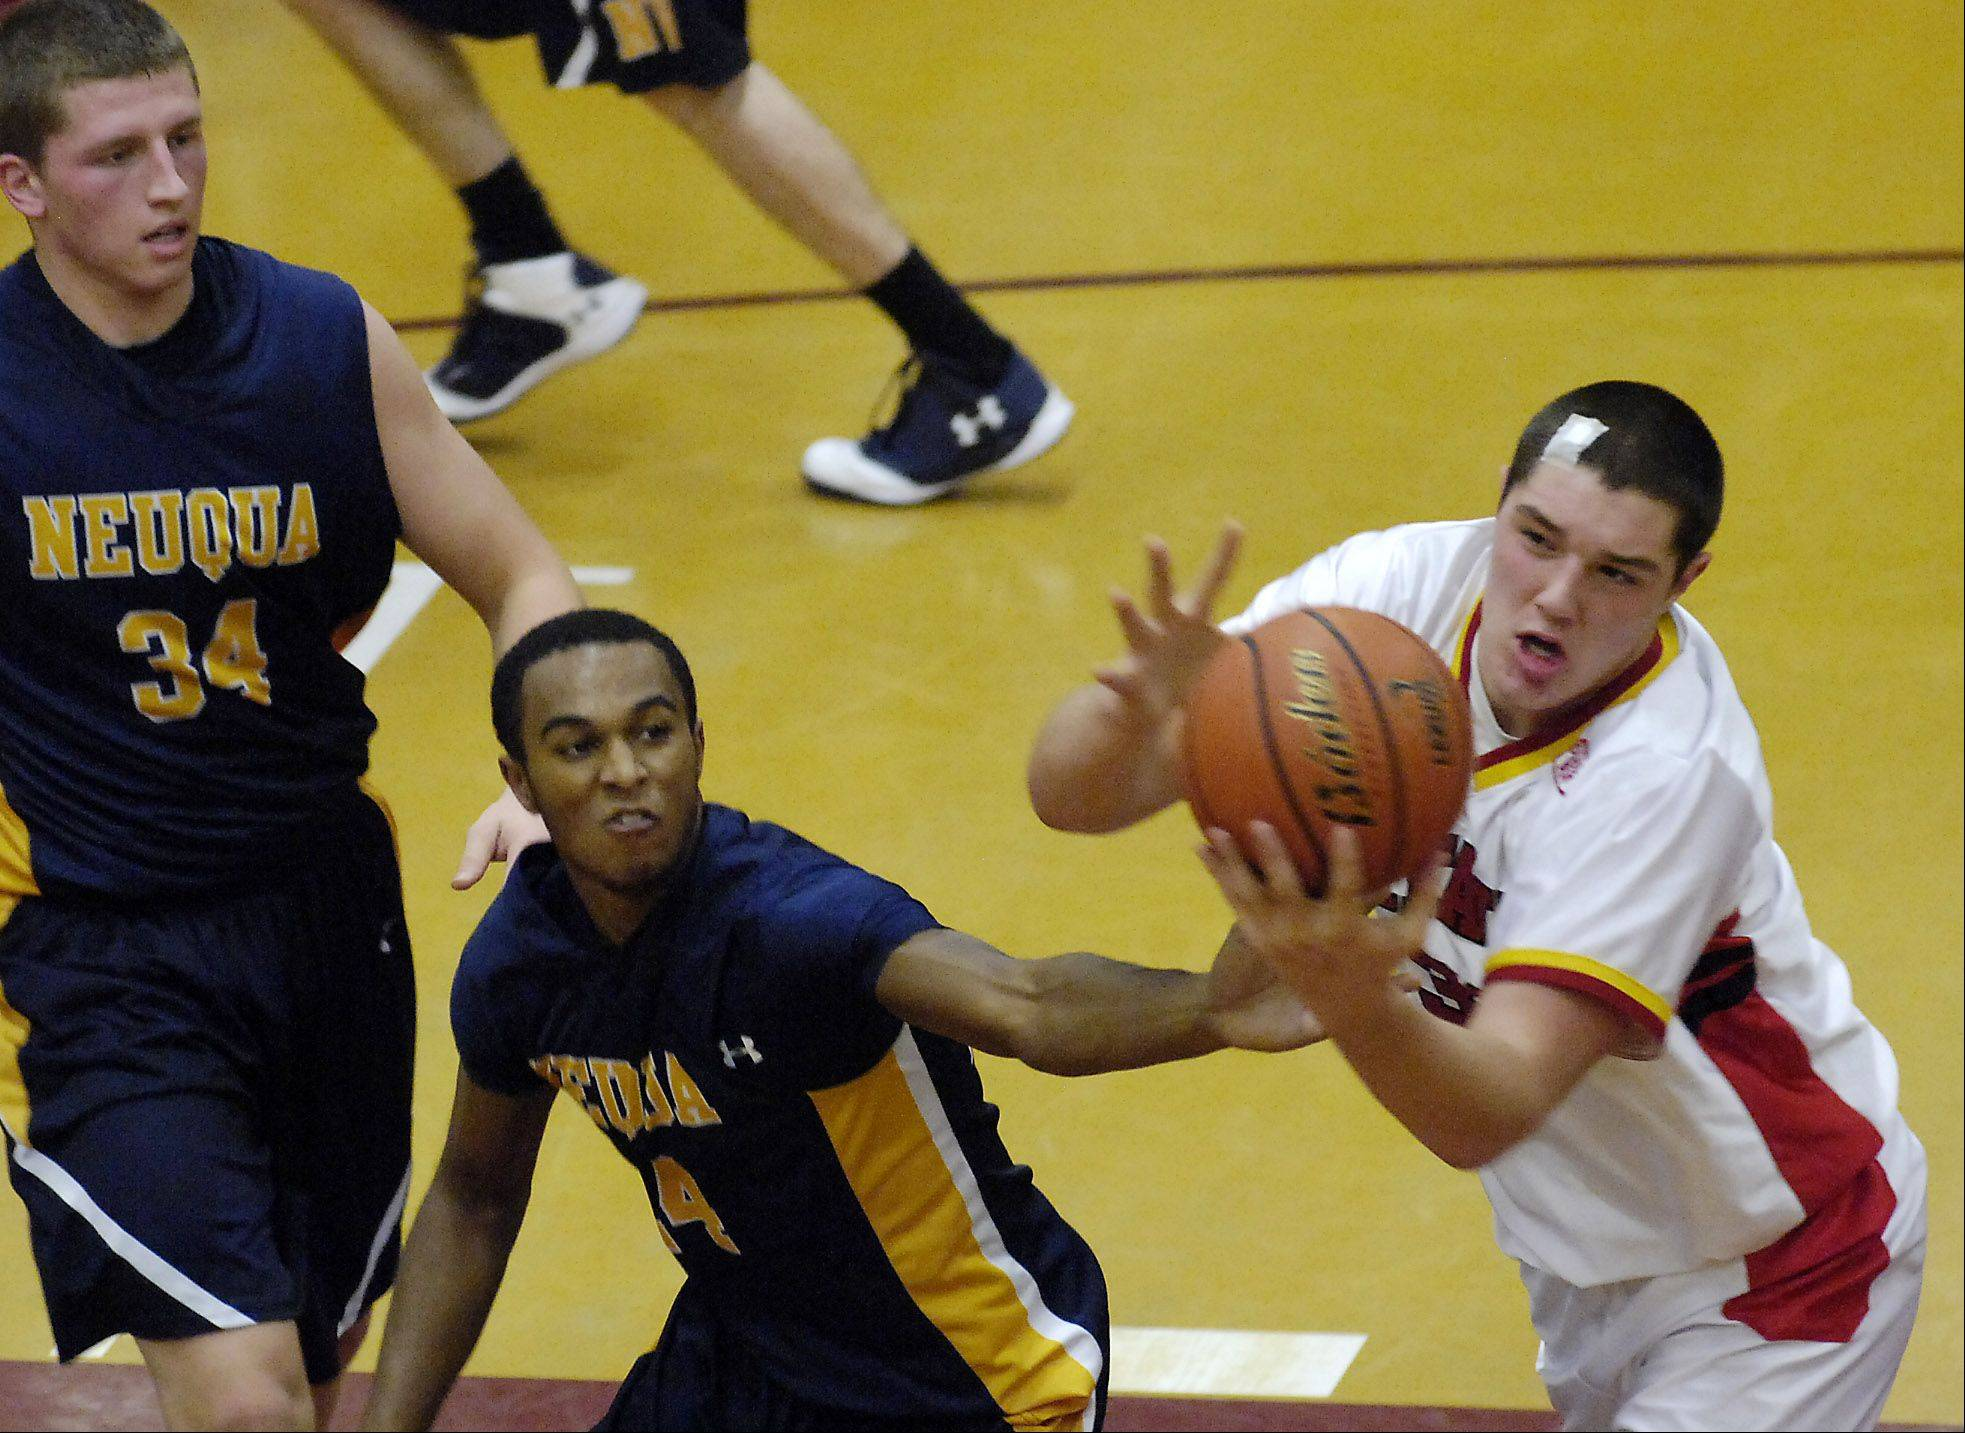 Batavia�s Cole Gardner battles Neuqua Valley�s Jabari Sandifer for a rebound.